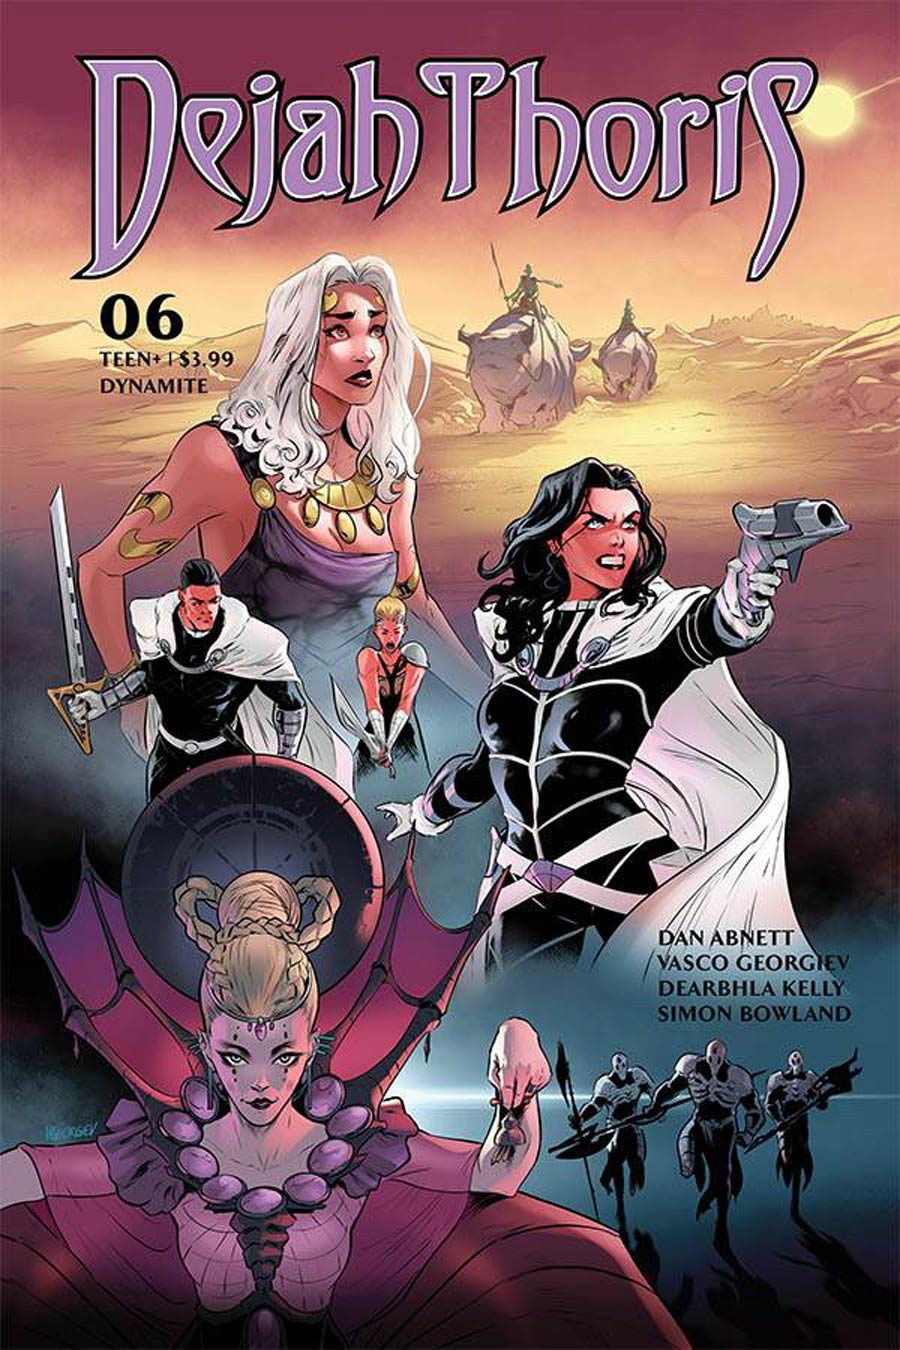 Dejah Thoris Vol 3 #6 Cover B Variant Vasco Georgiev Cover